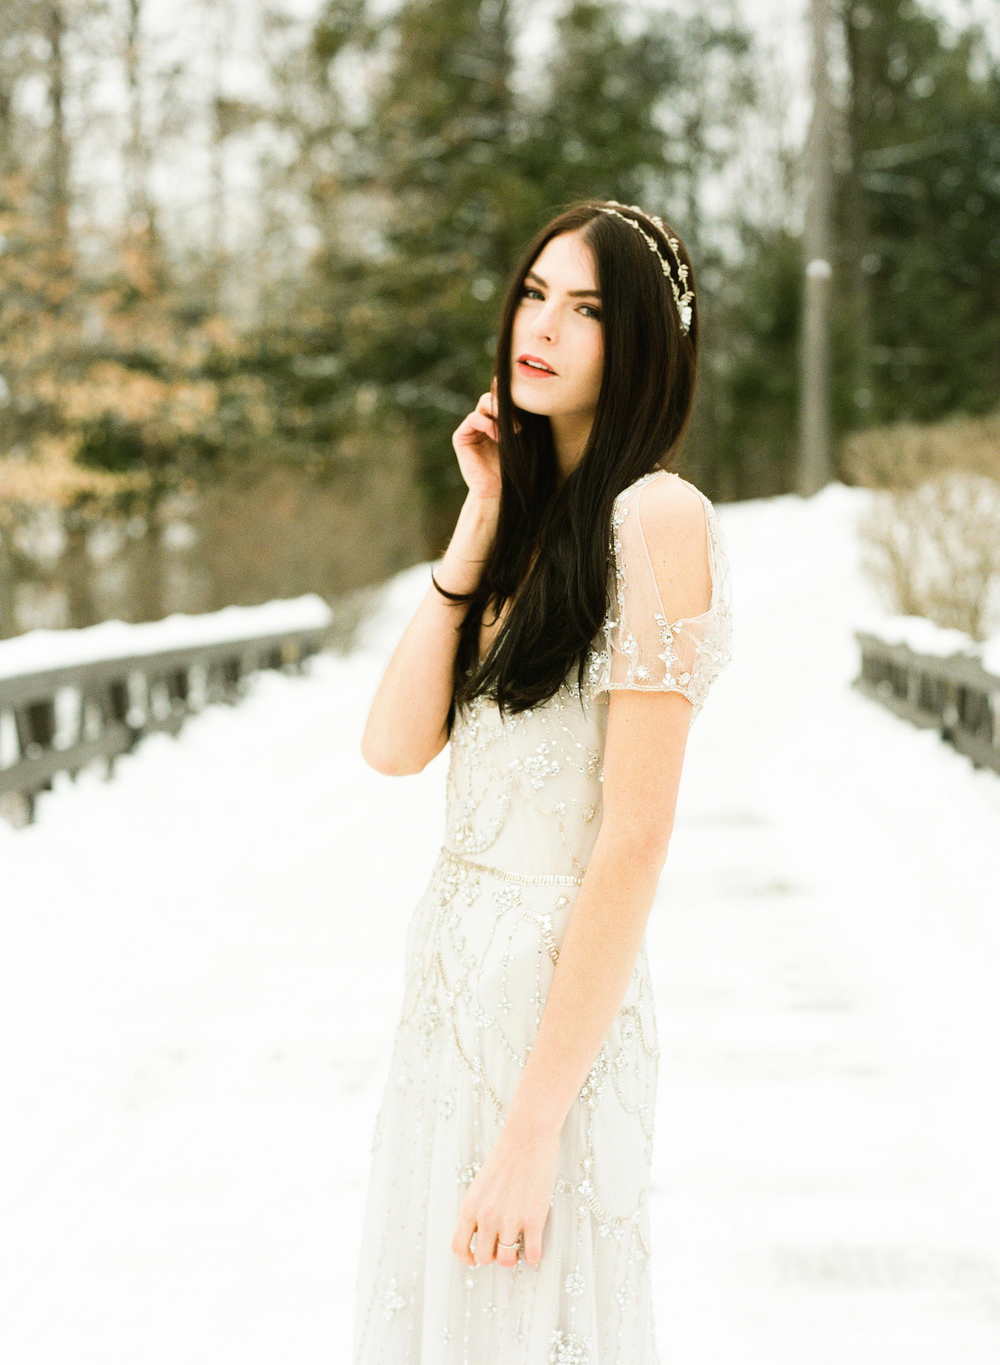 Winter Editorial-JennyPackham-LindsayMaddenPhotography-27 copy.jpg